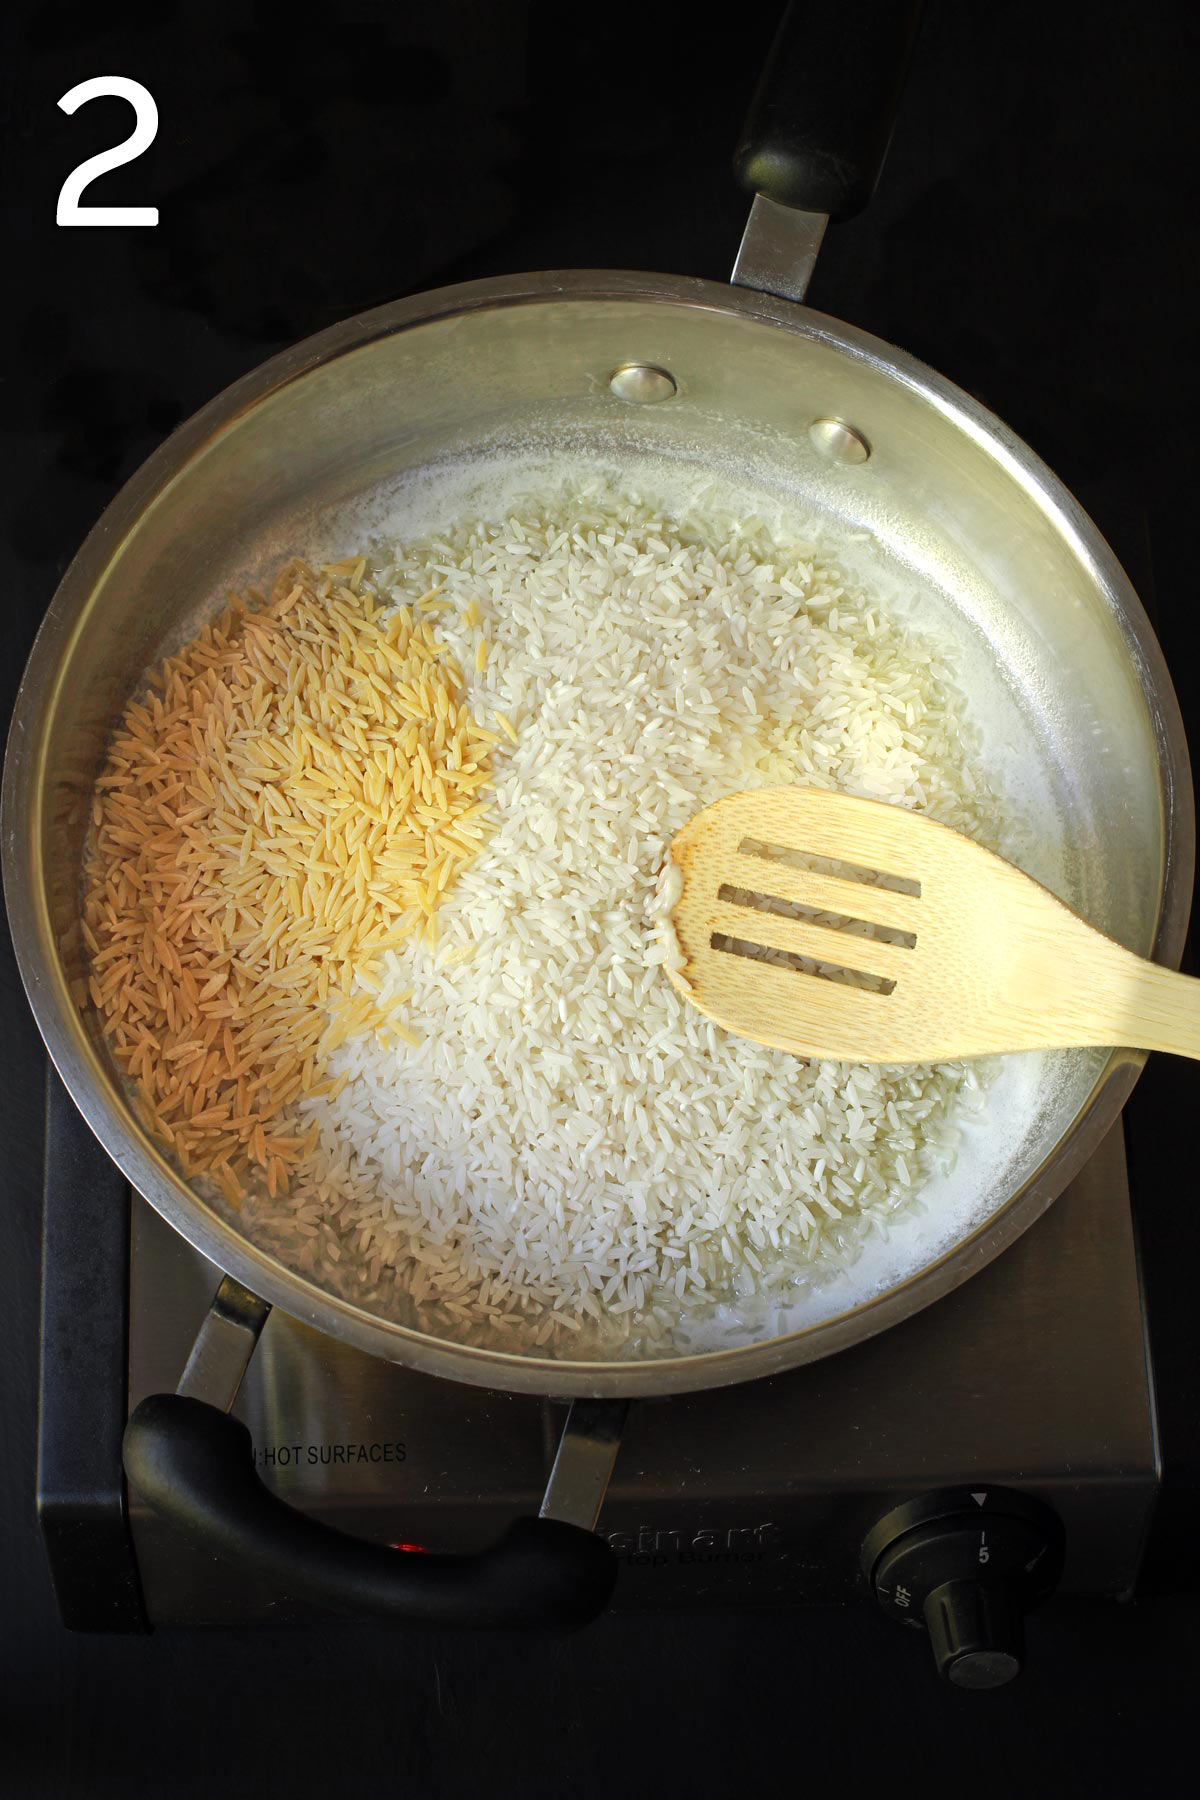 adding rice and orzo to the melted butter in the pan.